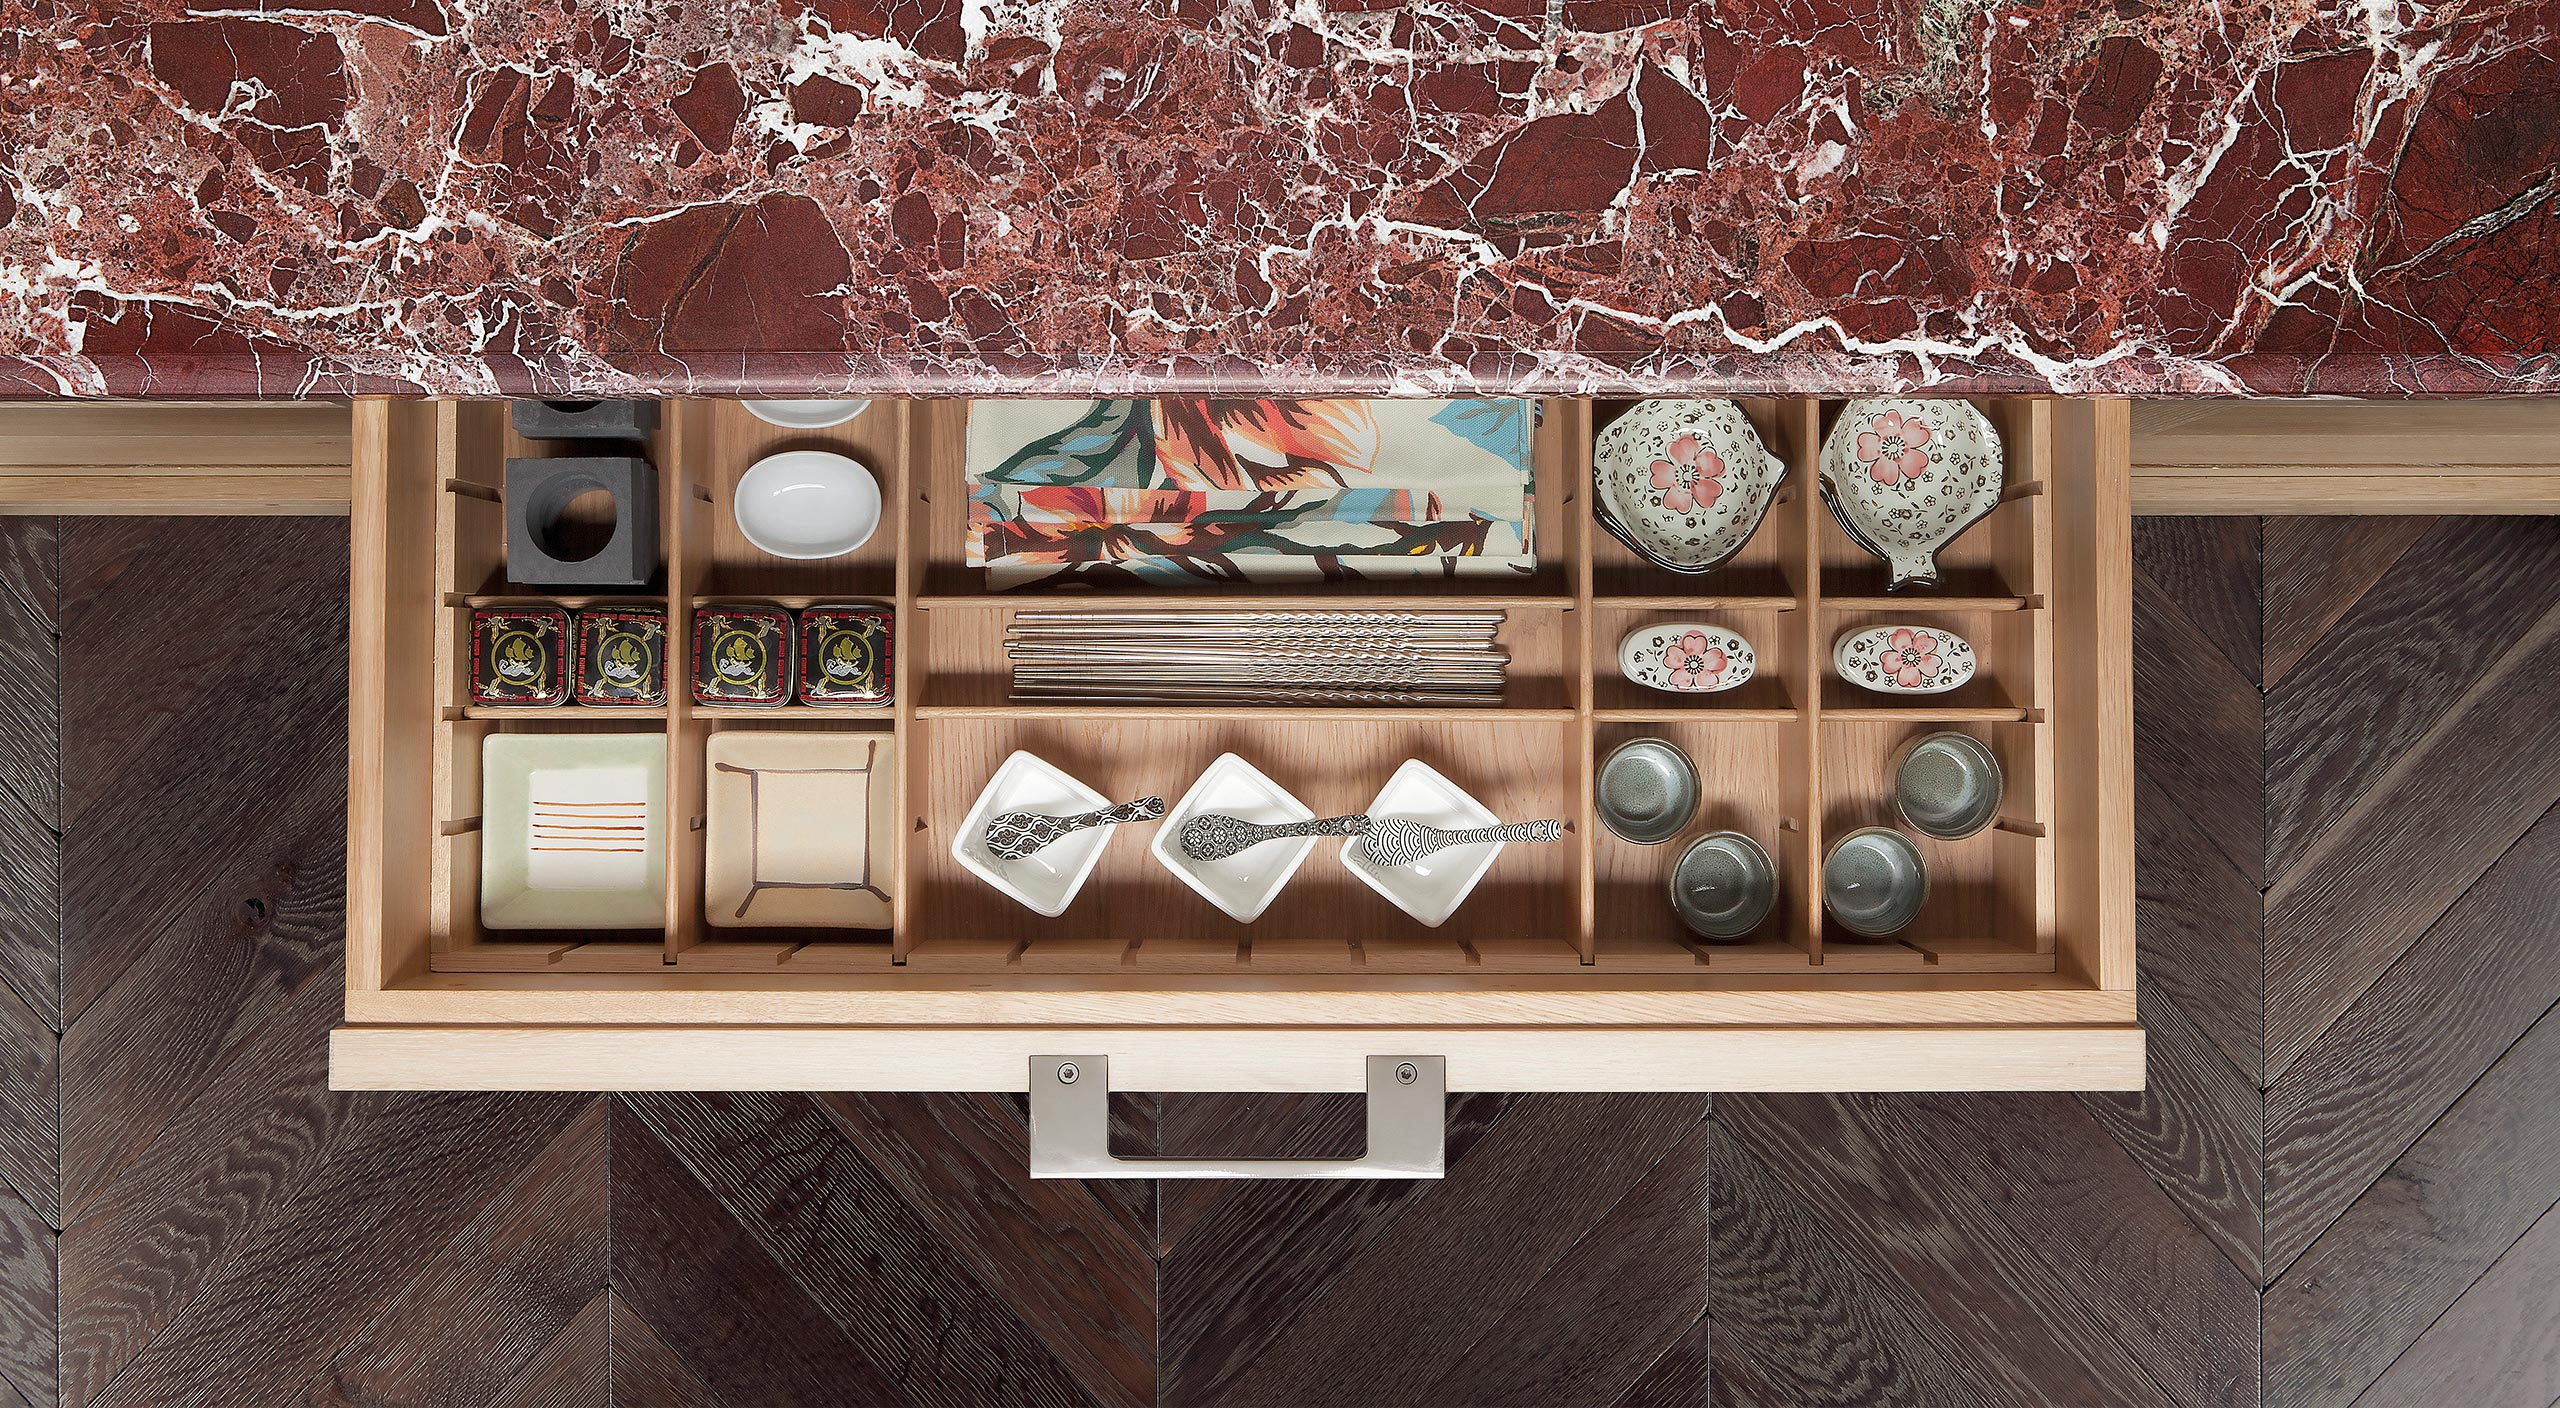 A Smallbone Brasserie kitchen island with limed oak cabinetry and Rosso Levanto marble worktop